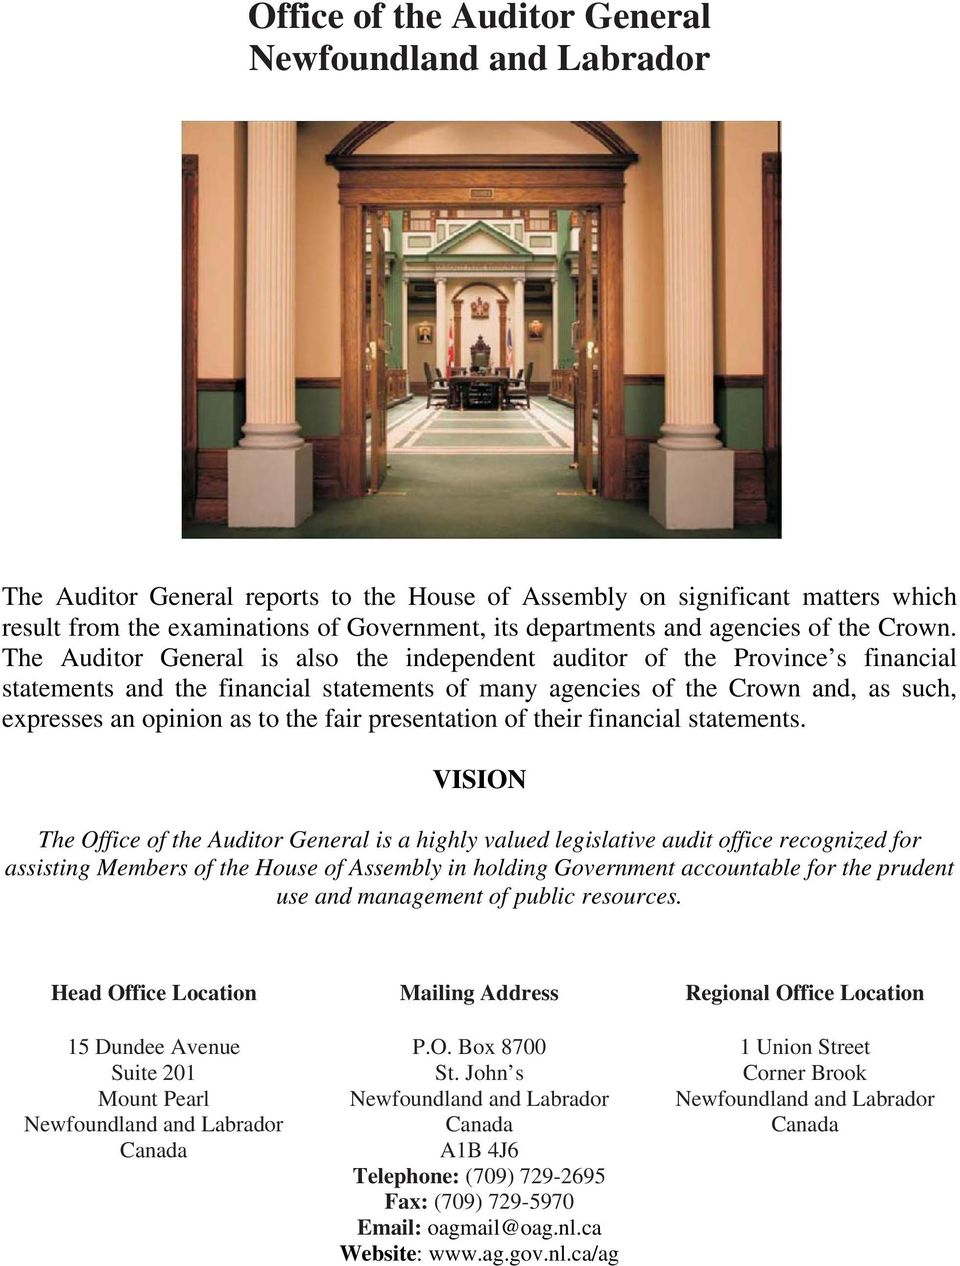 The Auditor General is also the independent auditor of the Province s financial statements and the financial statements of many agencies of the Crown and, as such, expresses an opinion as to the fair